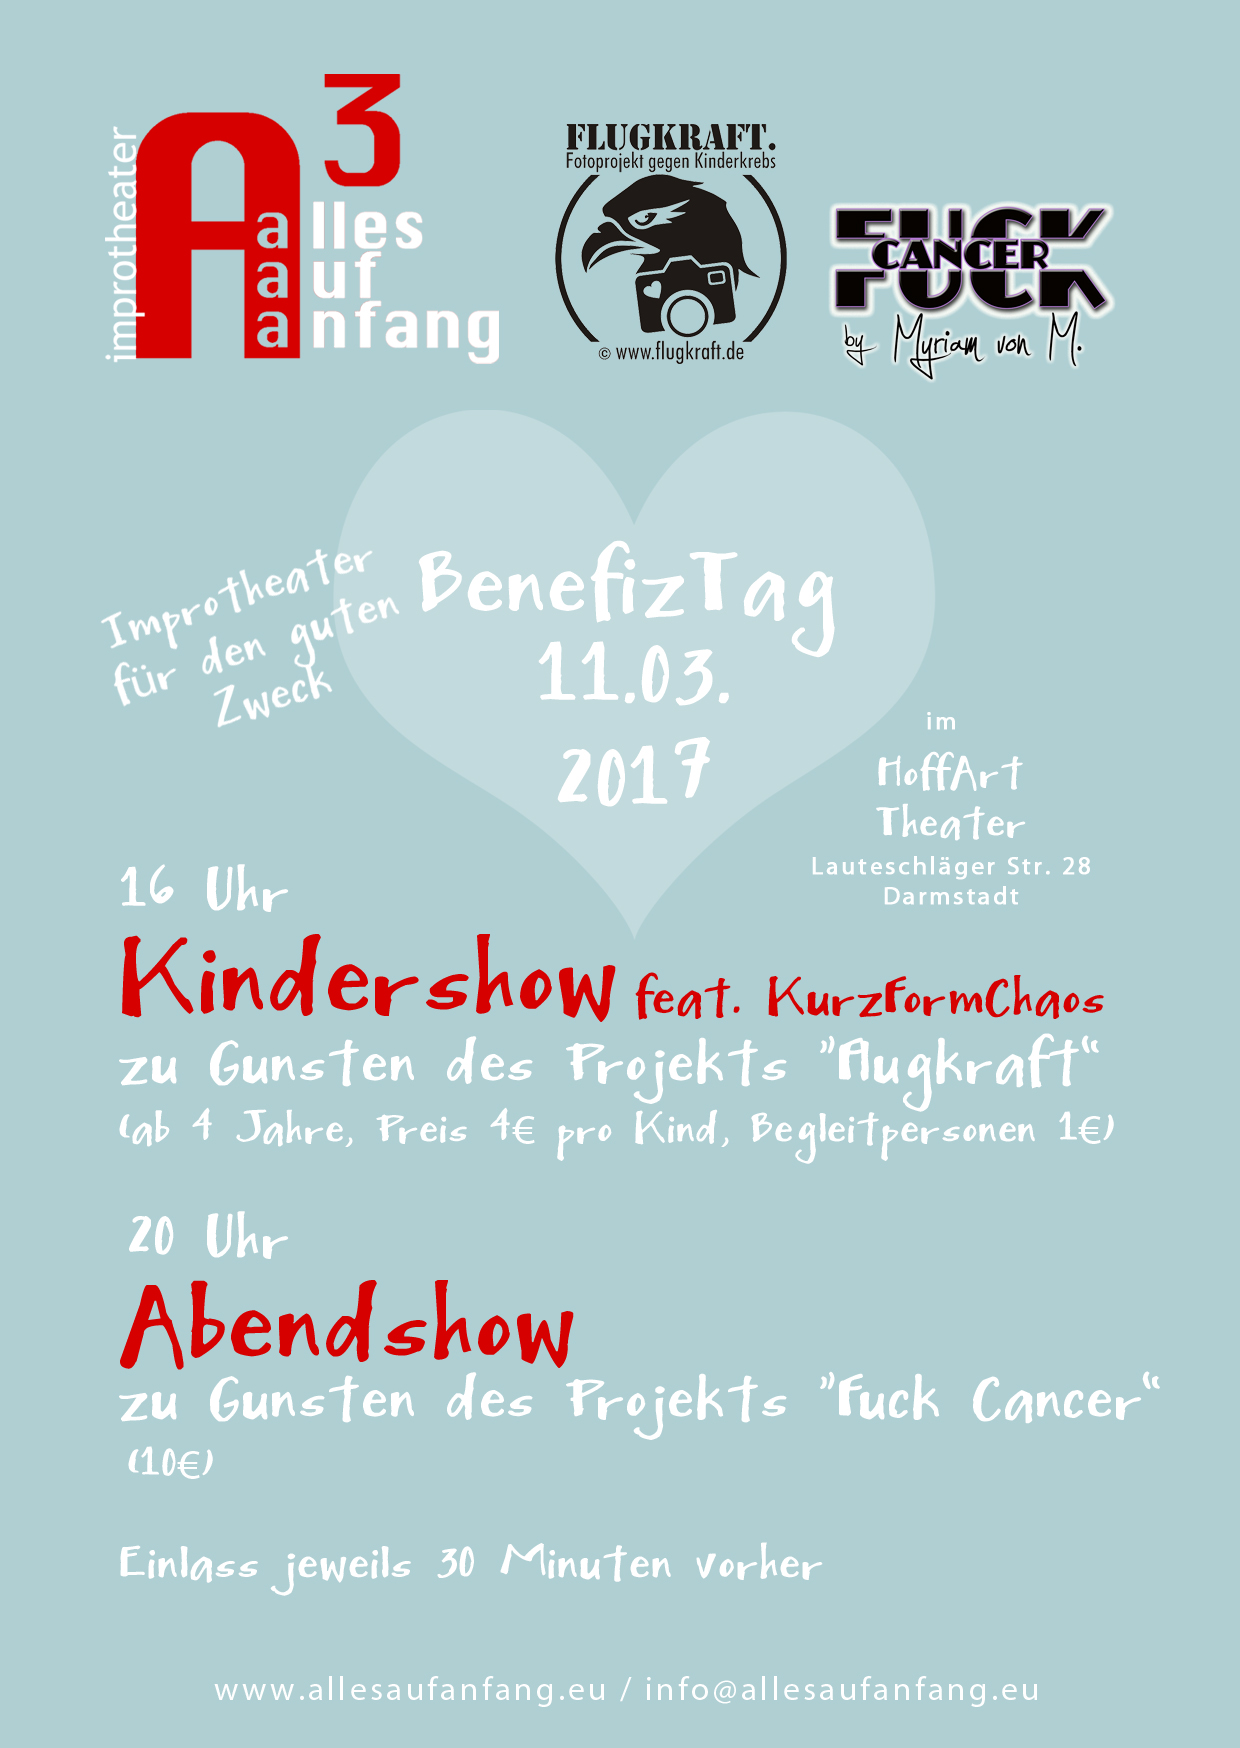 Alles Auf Anfang: Benefiz Tag Abendshow